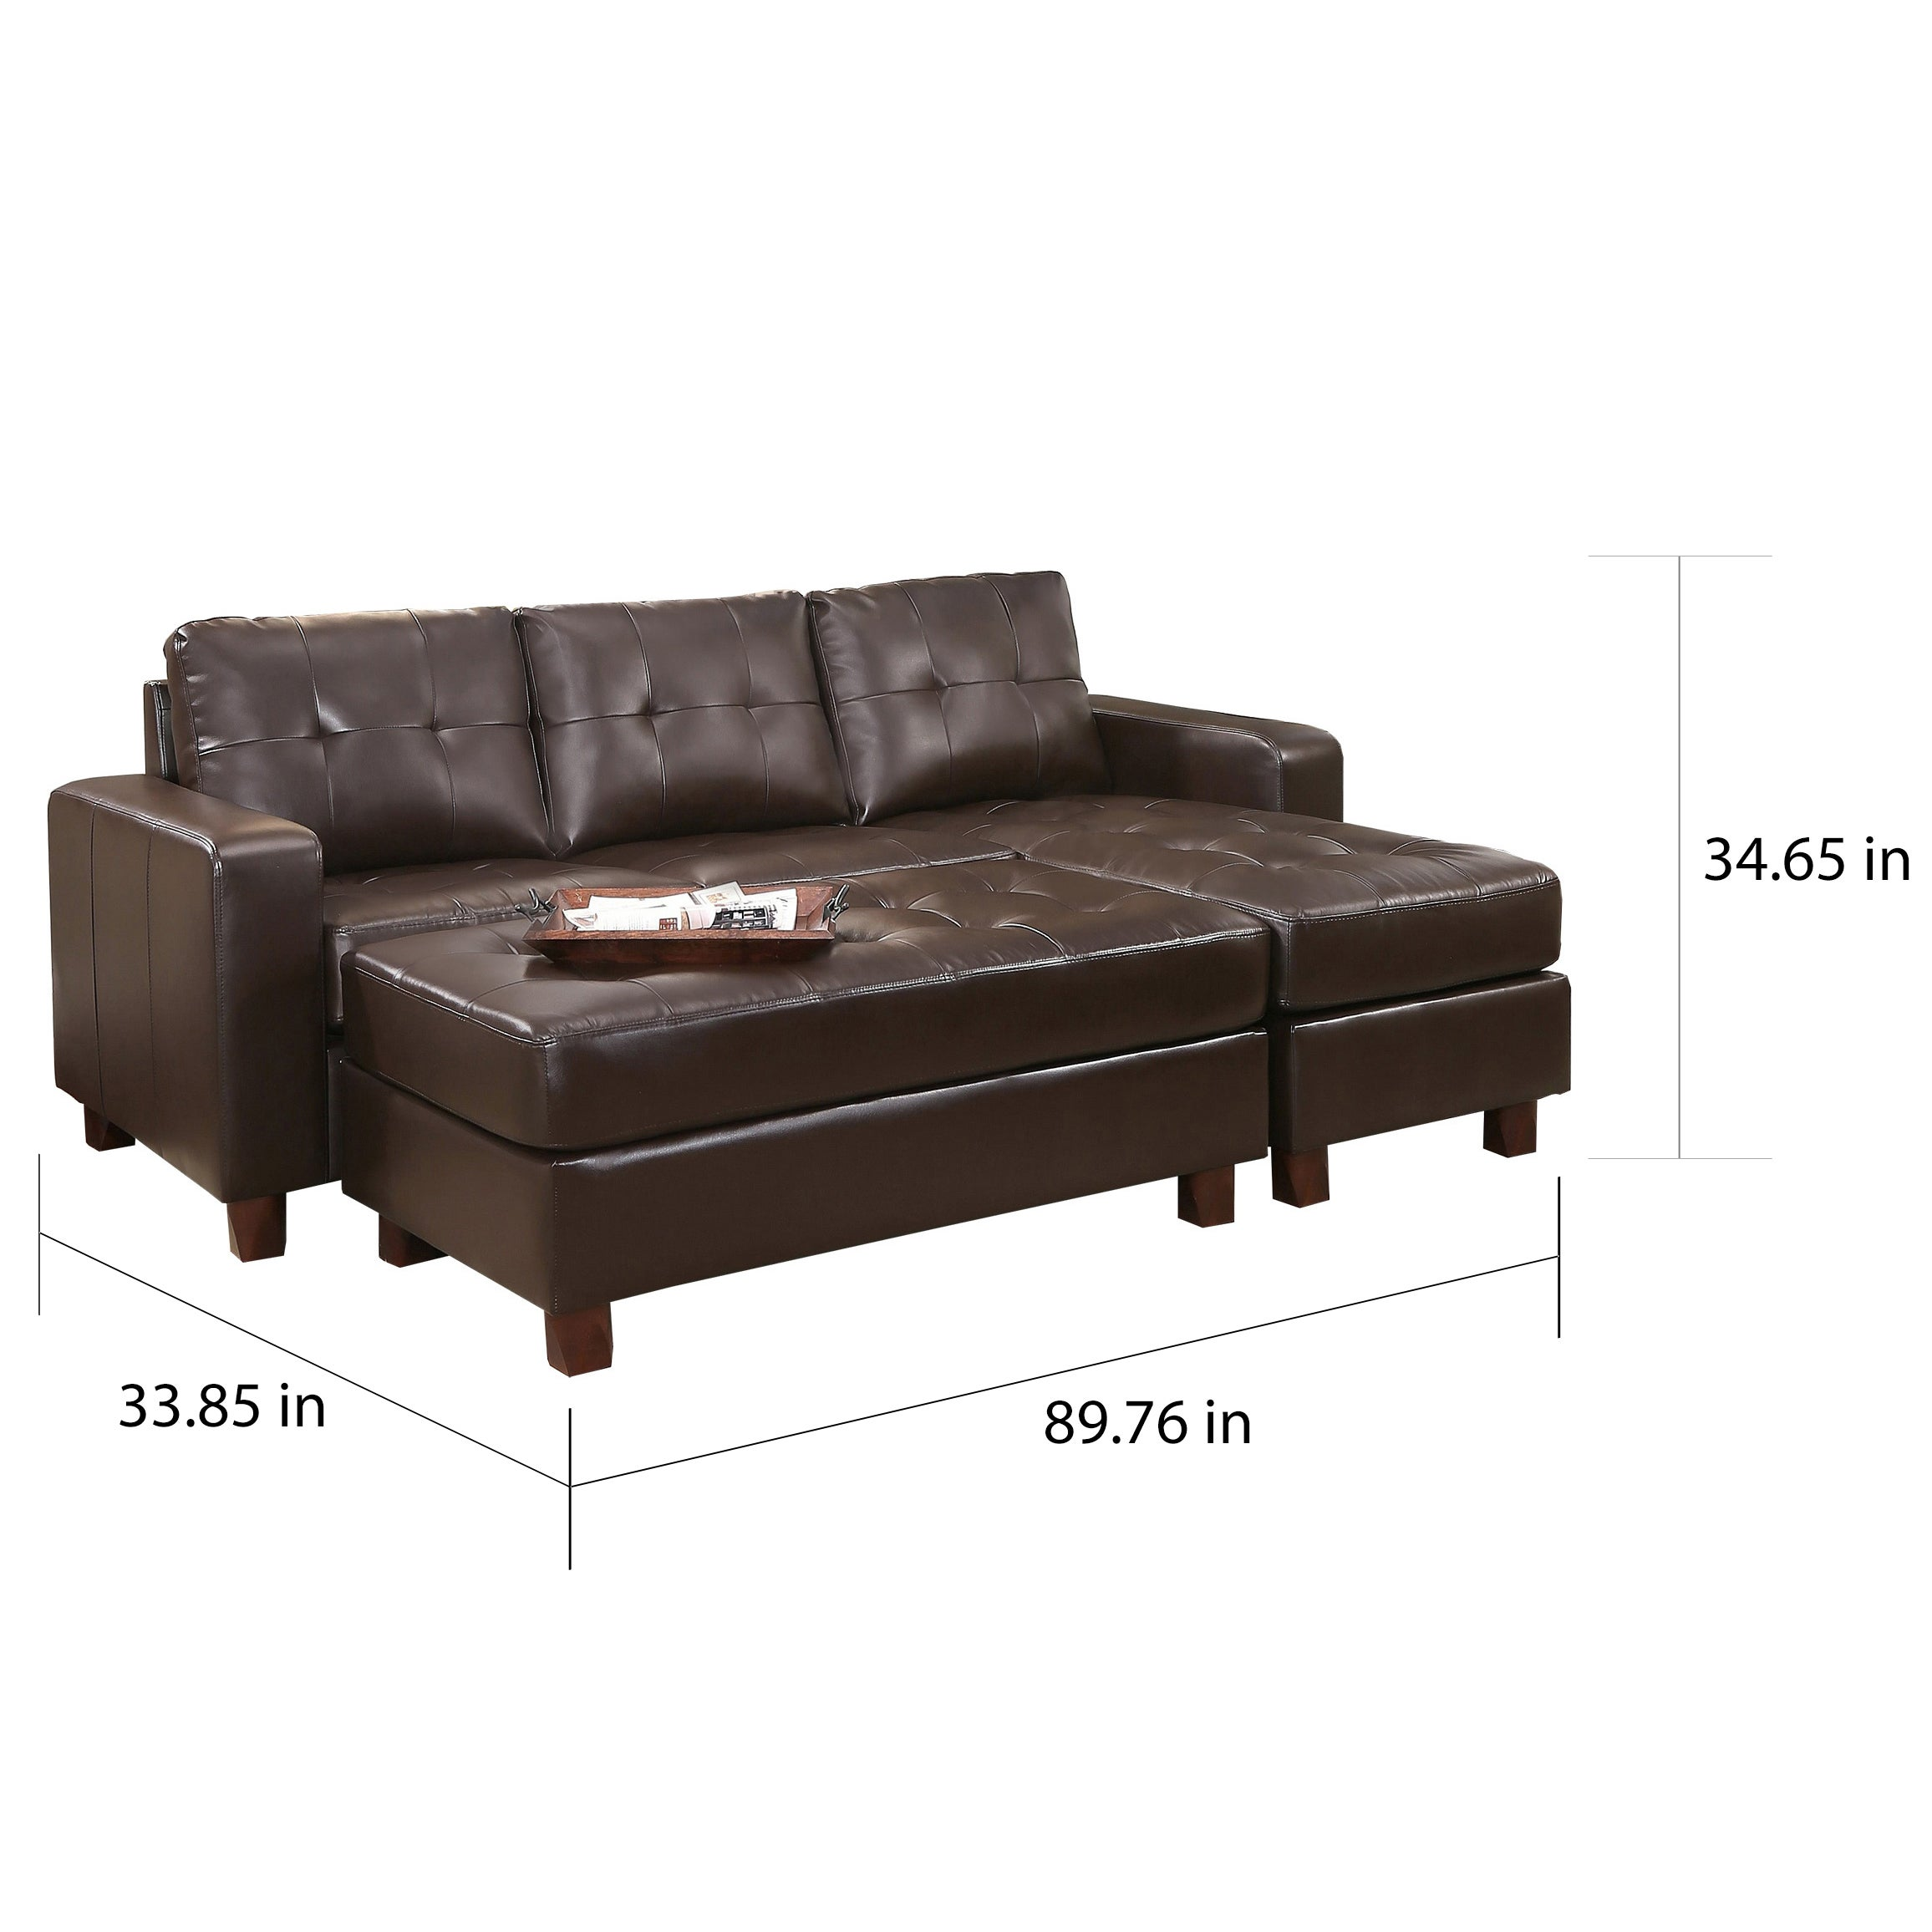 Stupendous Abbyson Montgomery Leather Reversible Sectional And Ottoman Ncnpc Chair Design For Home Ncnpcorg